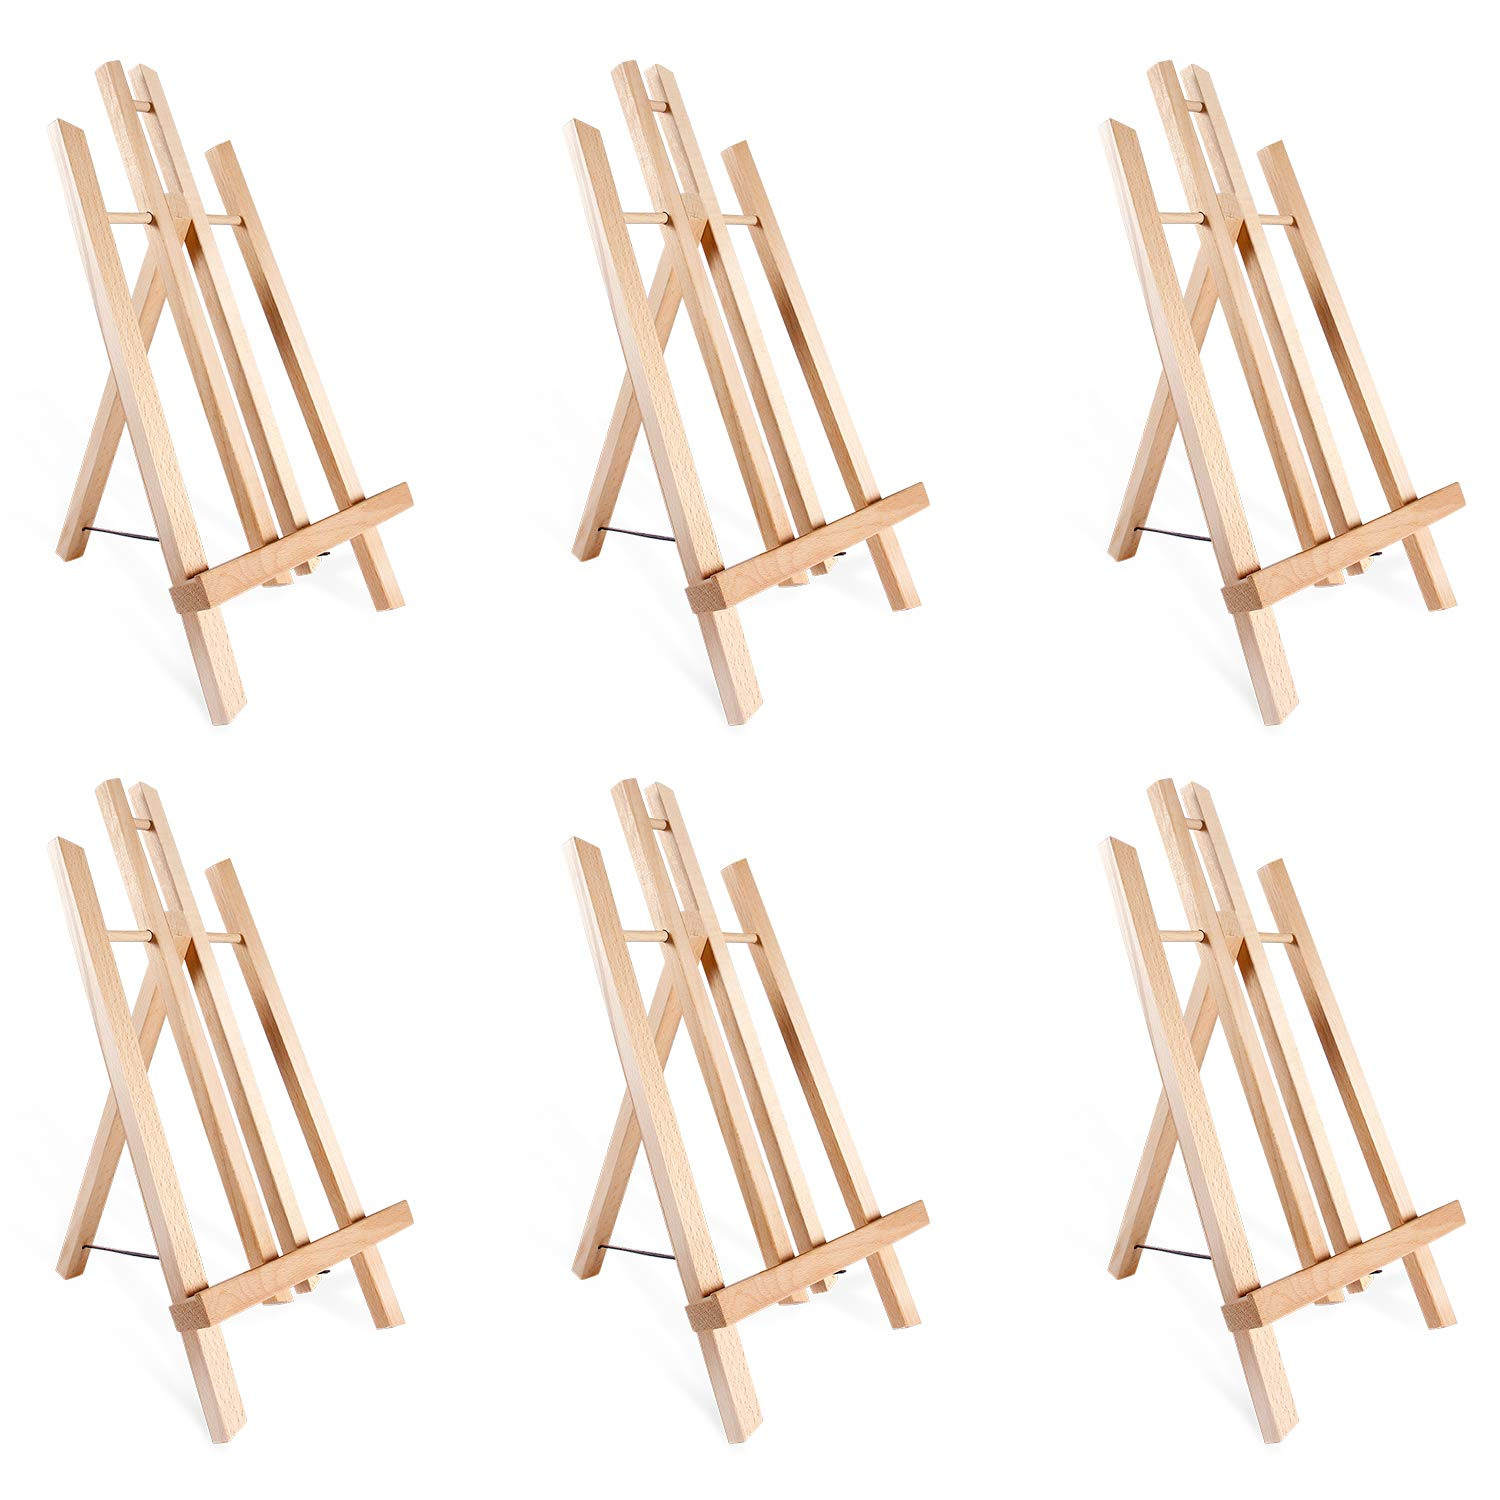 14'' A-Frame Painting Easels (6-Pack), Ohuhu 14 Inches Tall Display Stand Tabletop Art Easel Set Mini Wood Painting Easels for Kids Children Artist Adults Students Classroom Table top Display